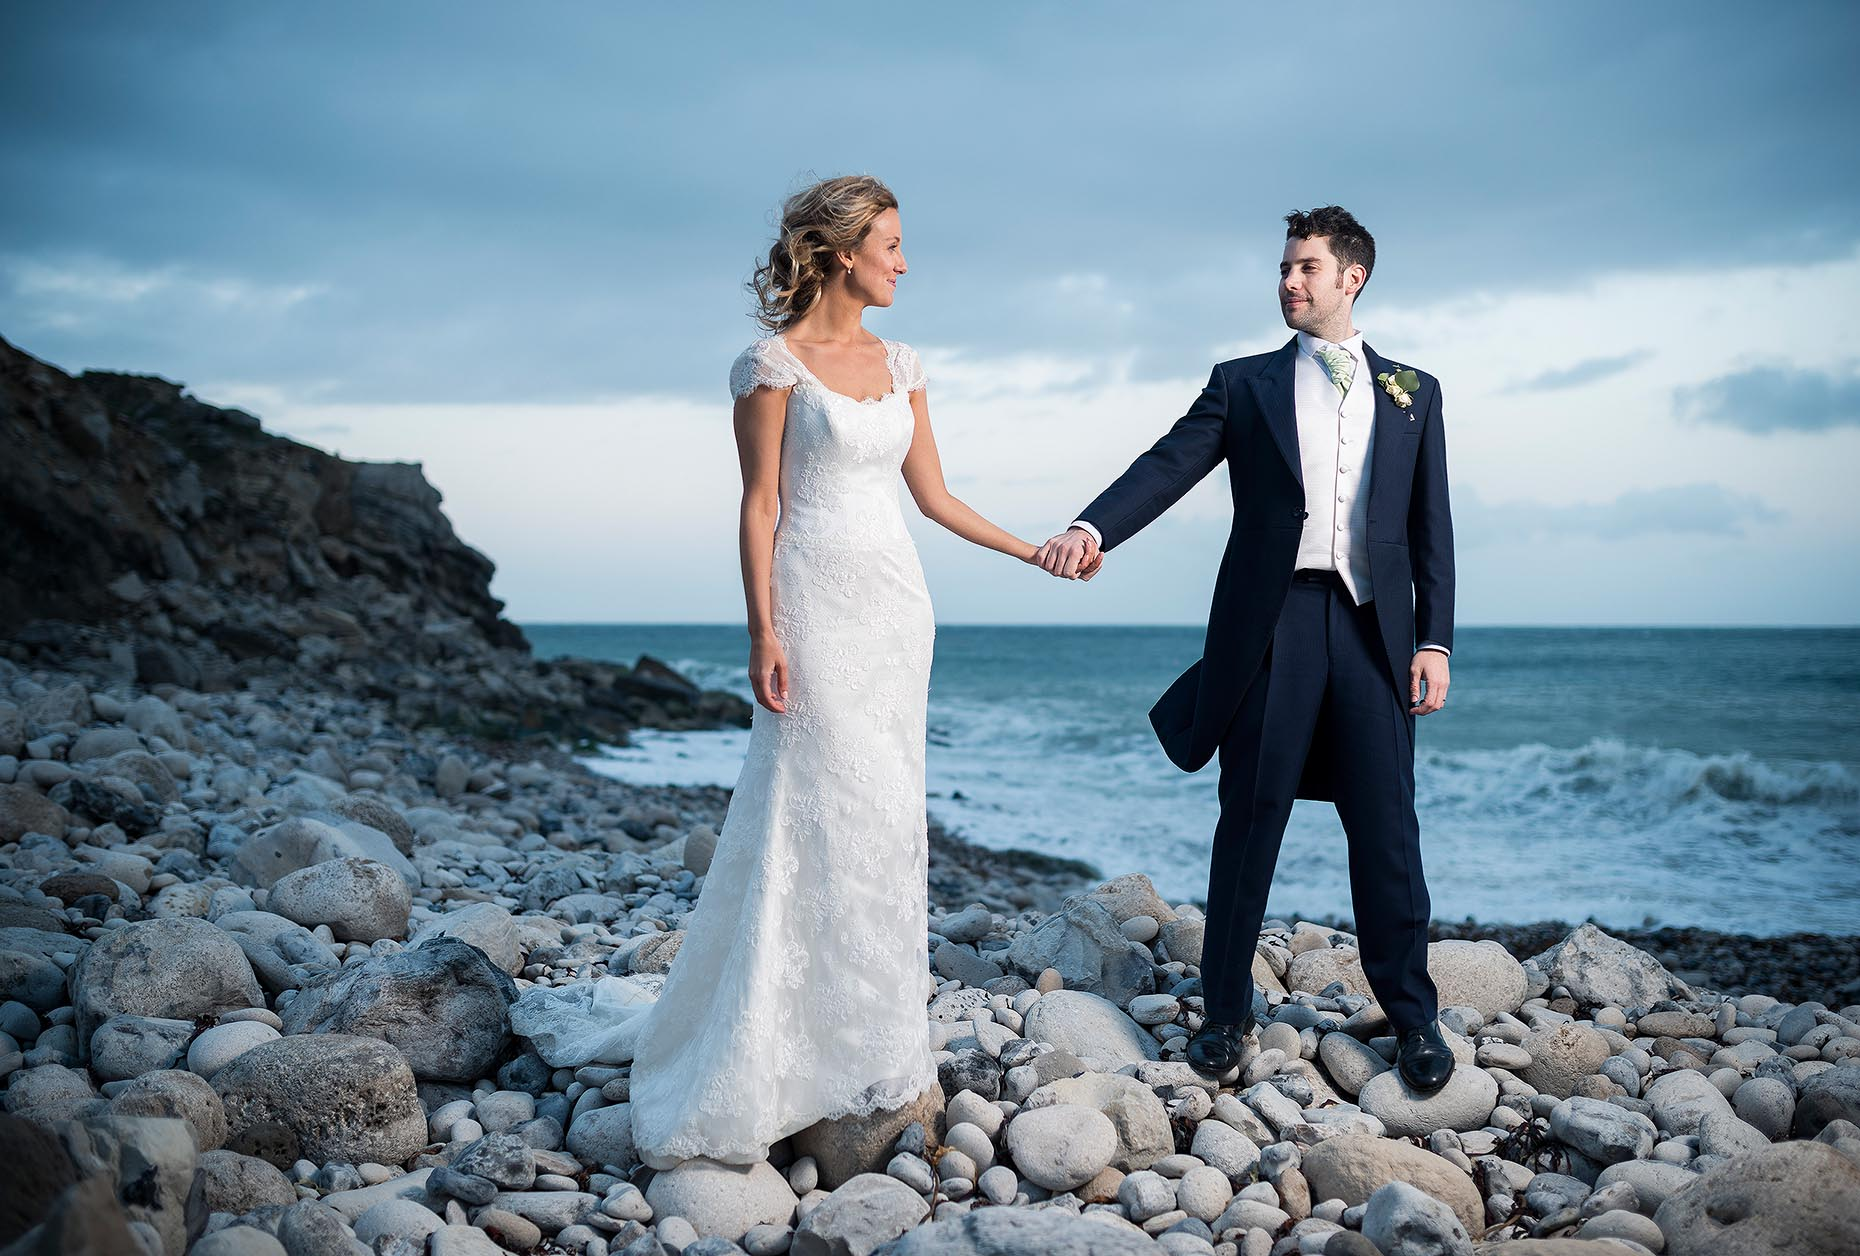 helen-twilight-profoto-church-ope-cove-wedding-dorset-coast-01